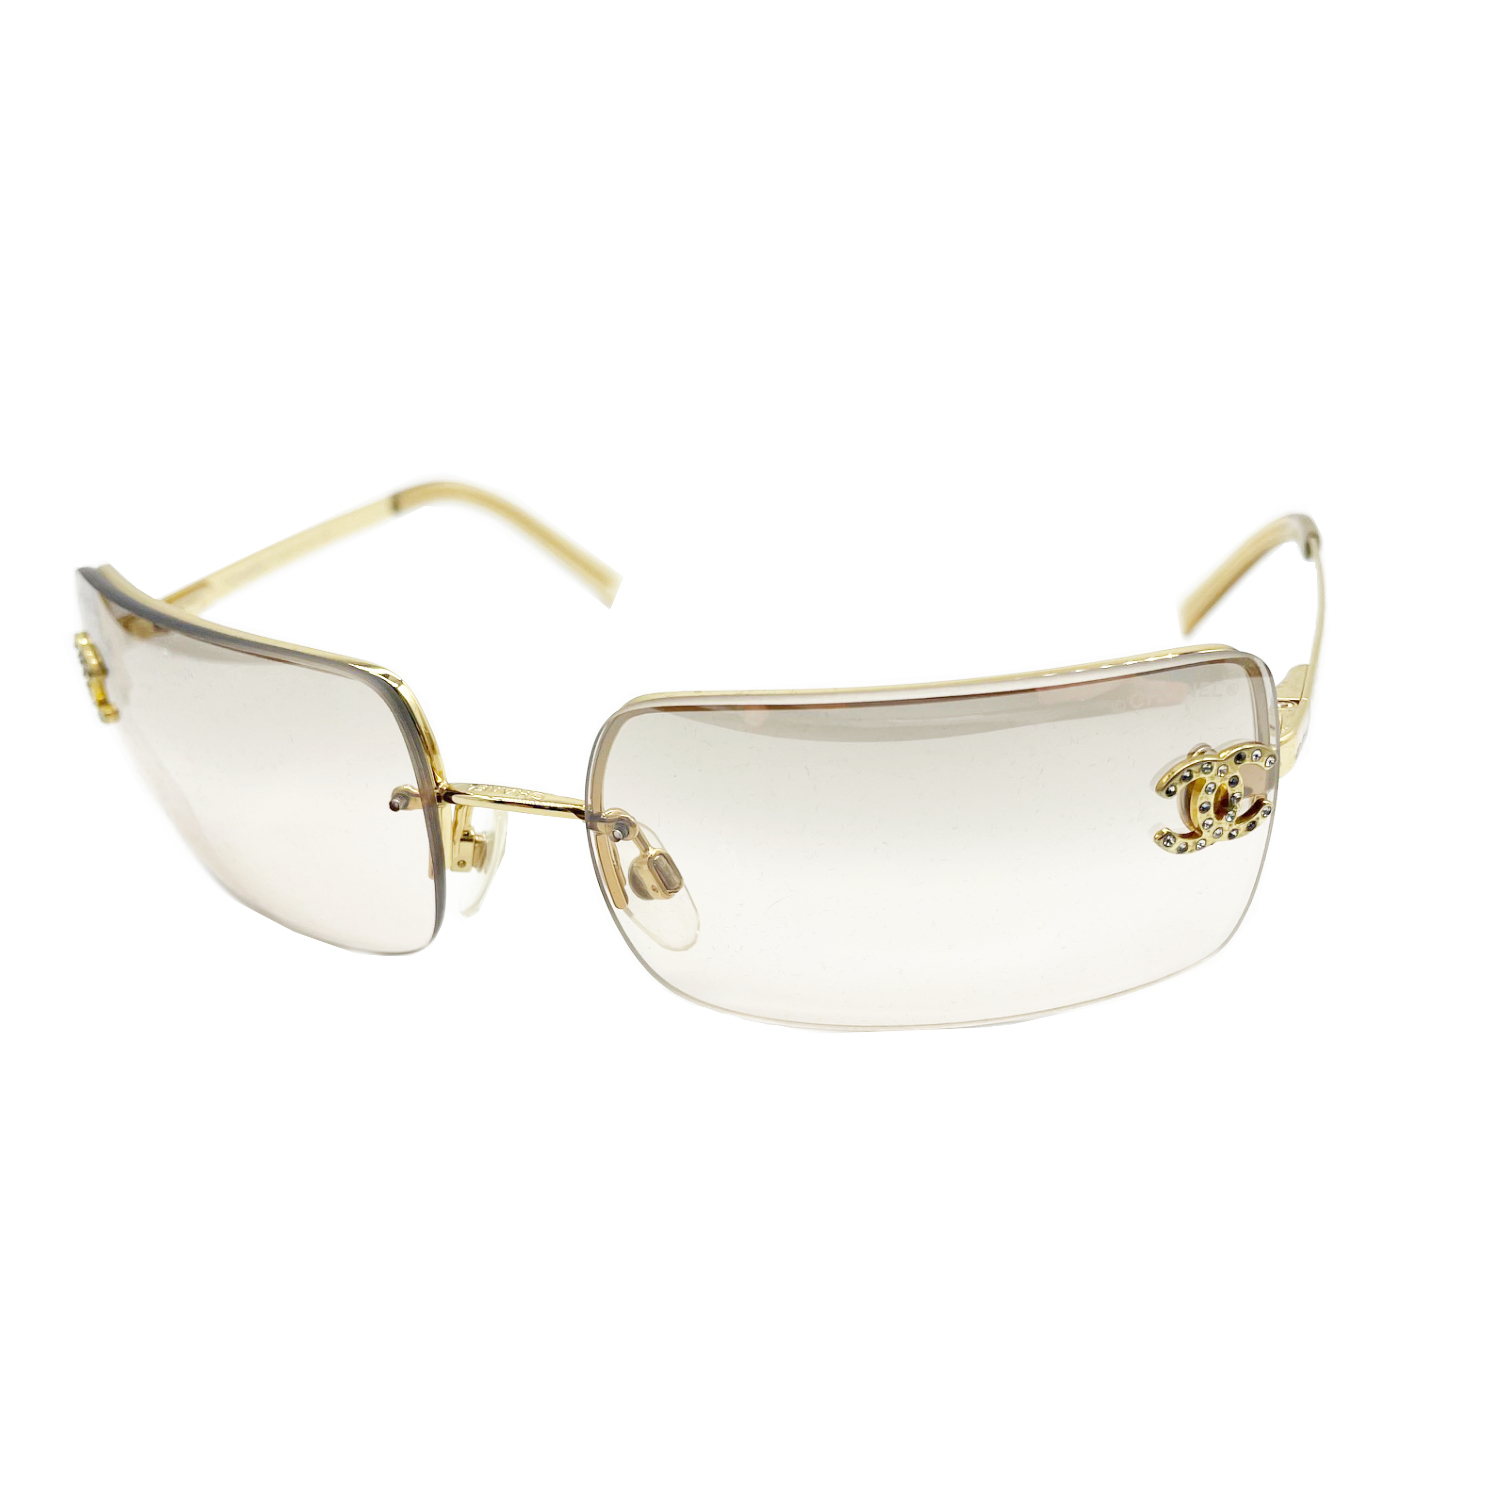 Vintage Chanel Diamante Rimless Sunglasses in Gold | NITRYL